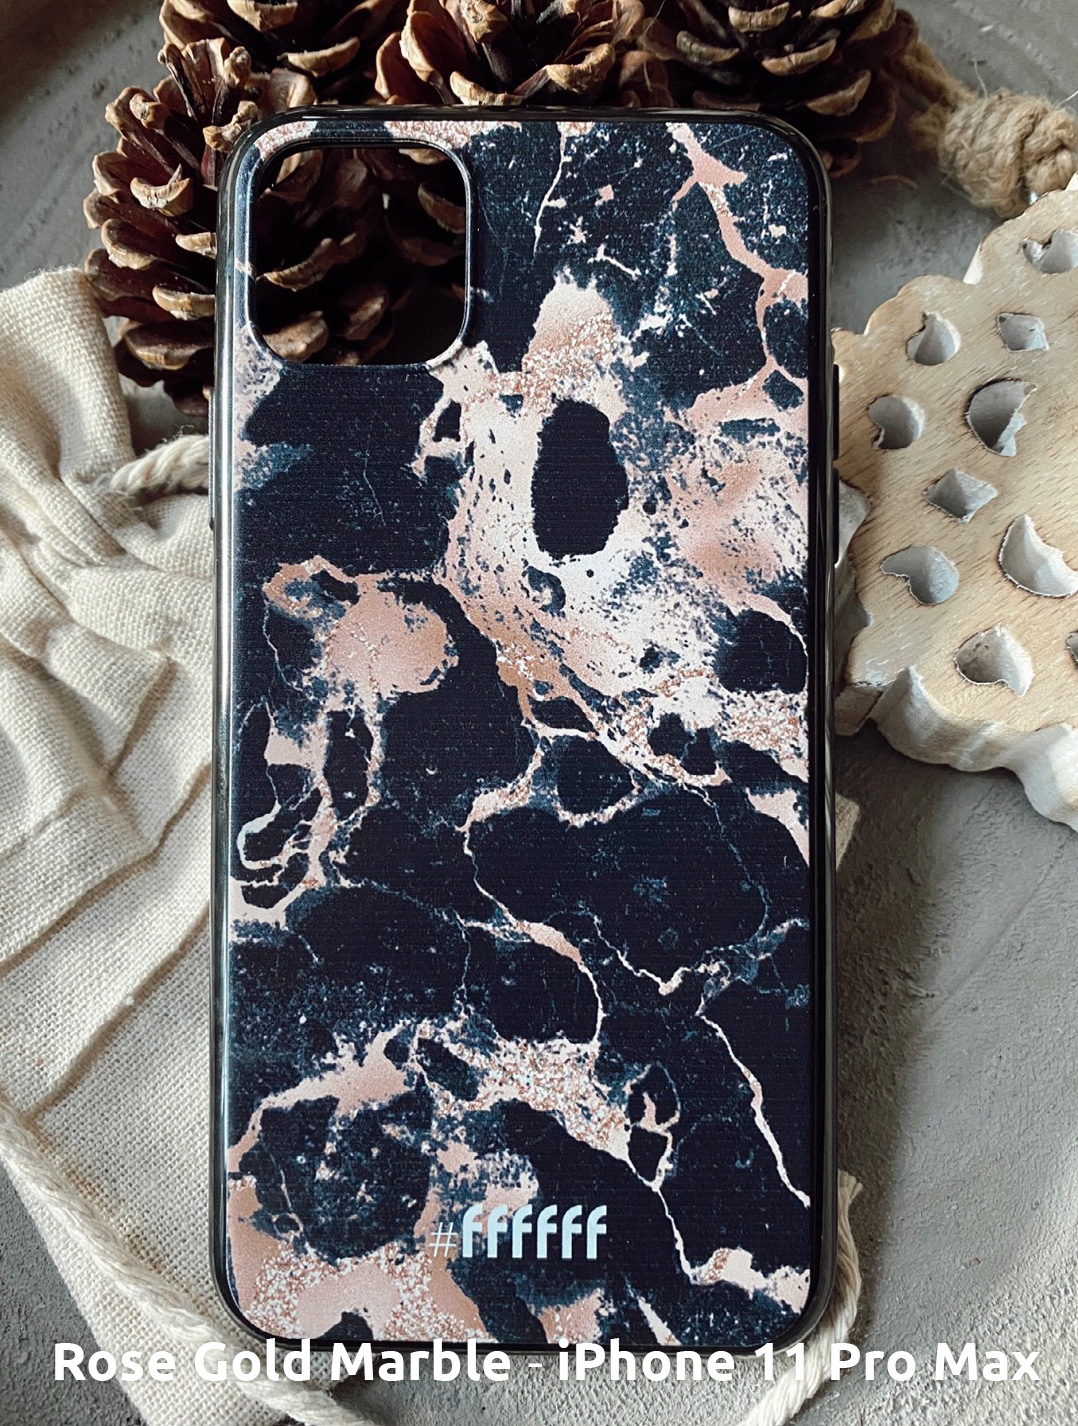 Rose Gold Marble - iPhone 11 Pro Max